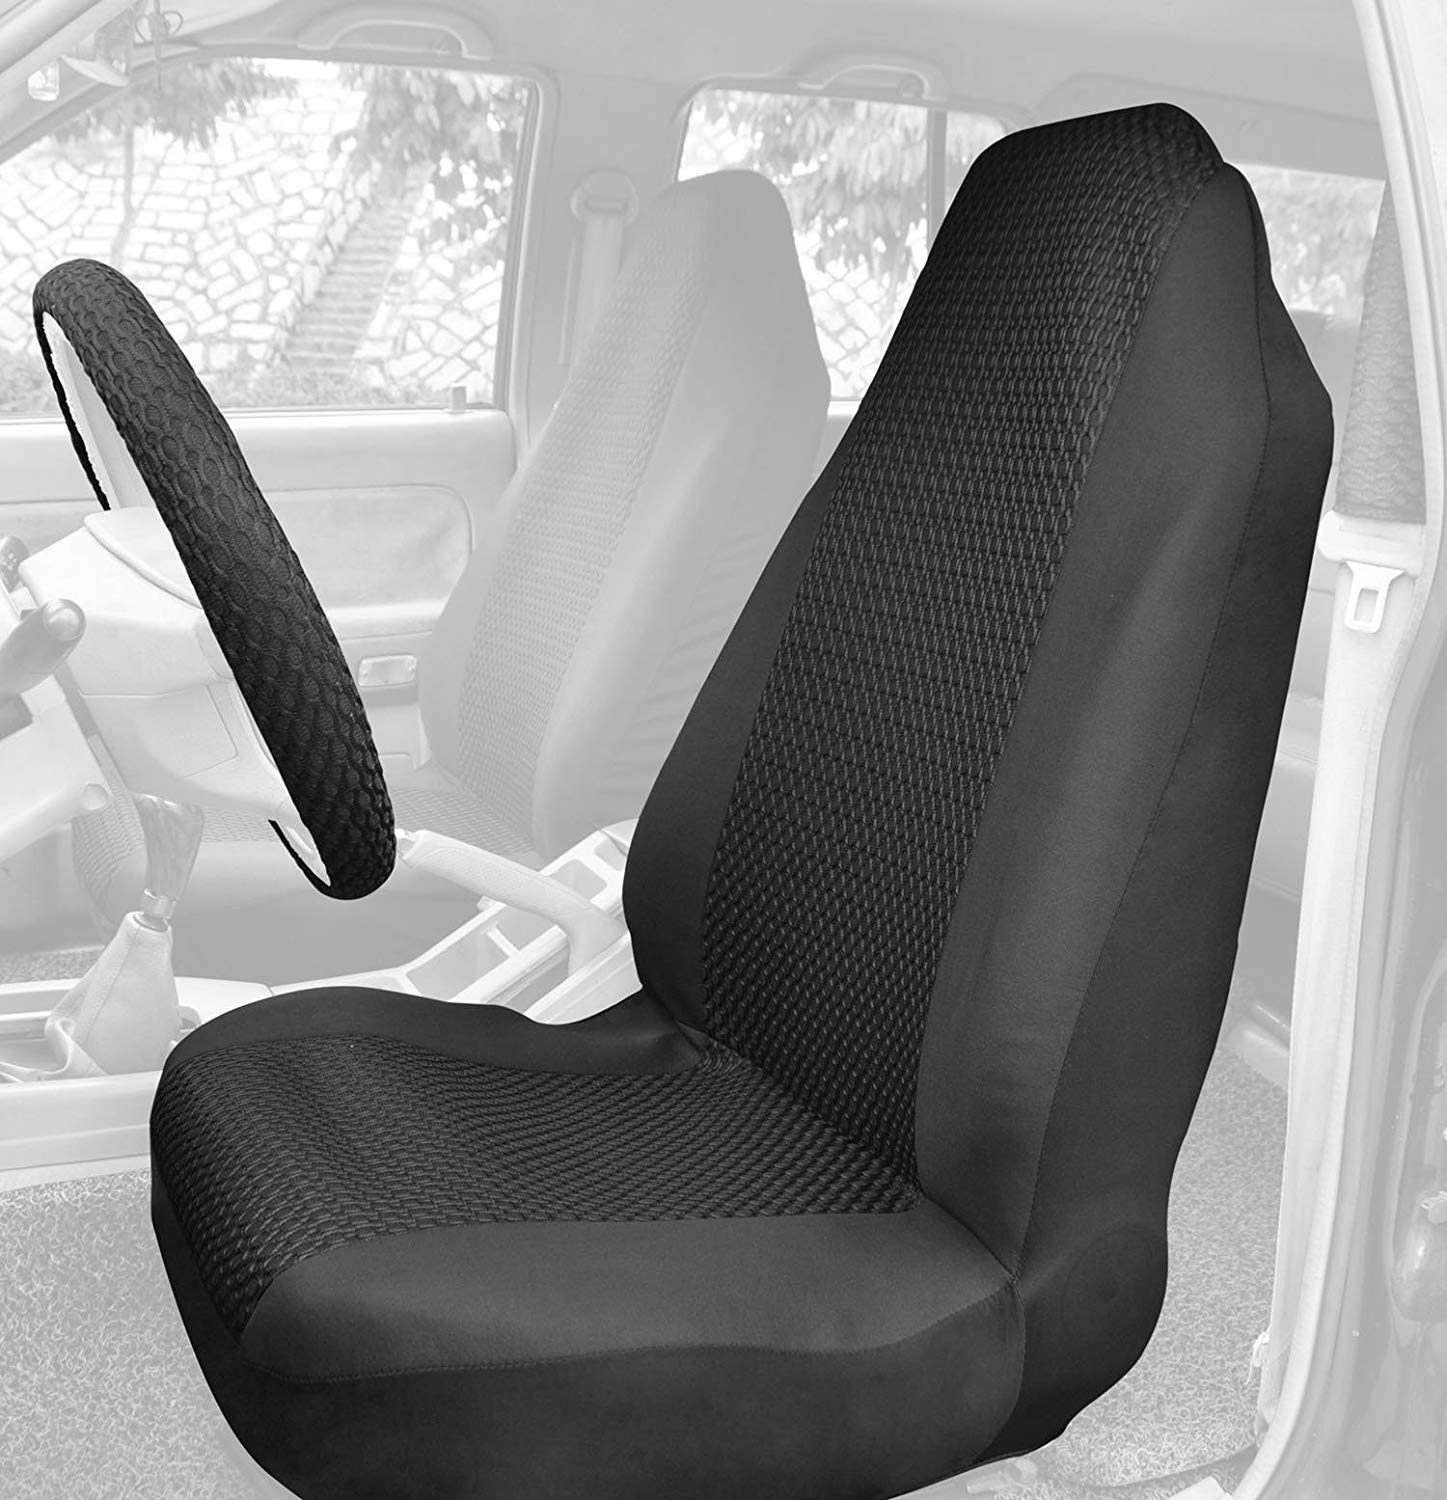 Bucket Seat Covers Front Seat Protector Sandwich Black with Seat Belt Cover Steering Wheel Cover Universal Fit for Auto Truck Van SUV